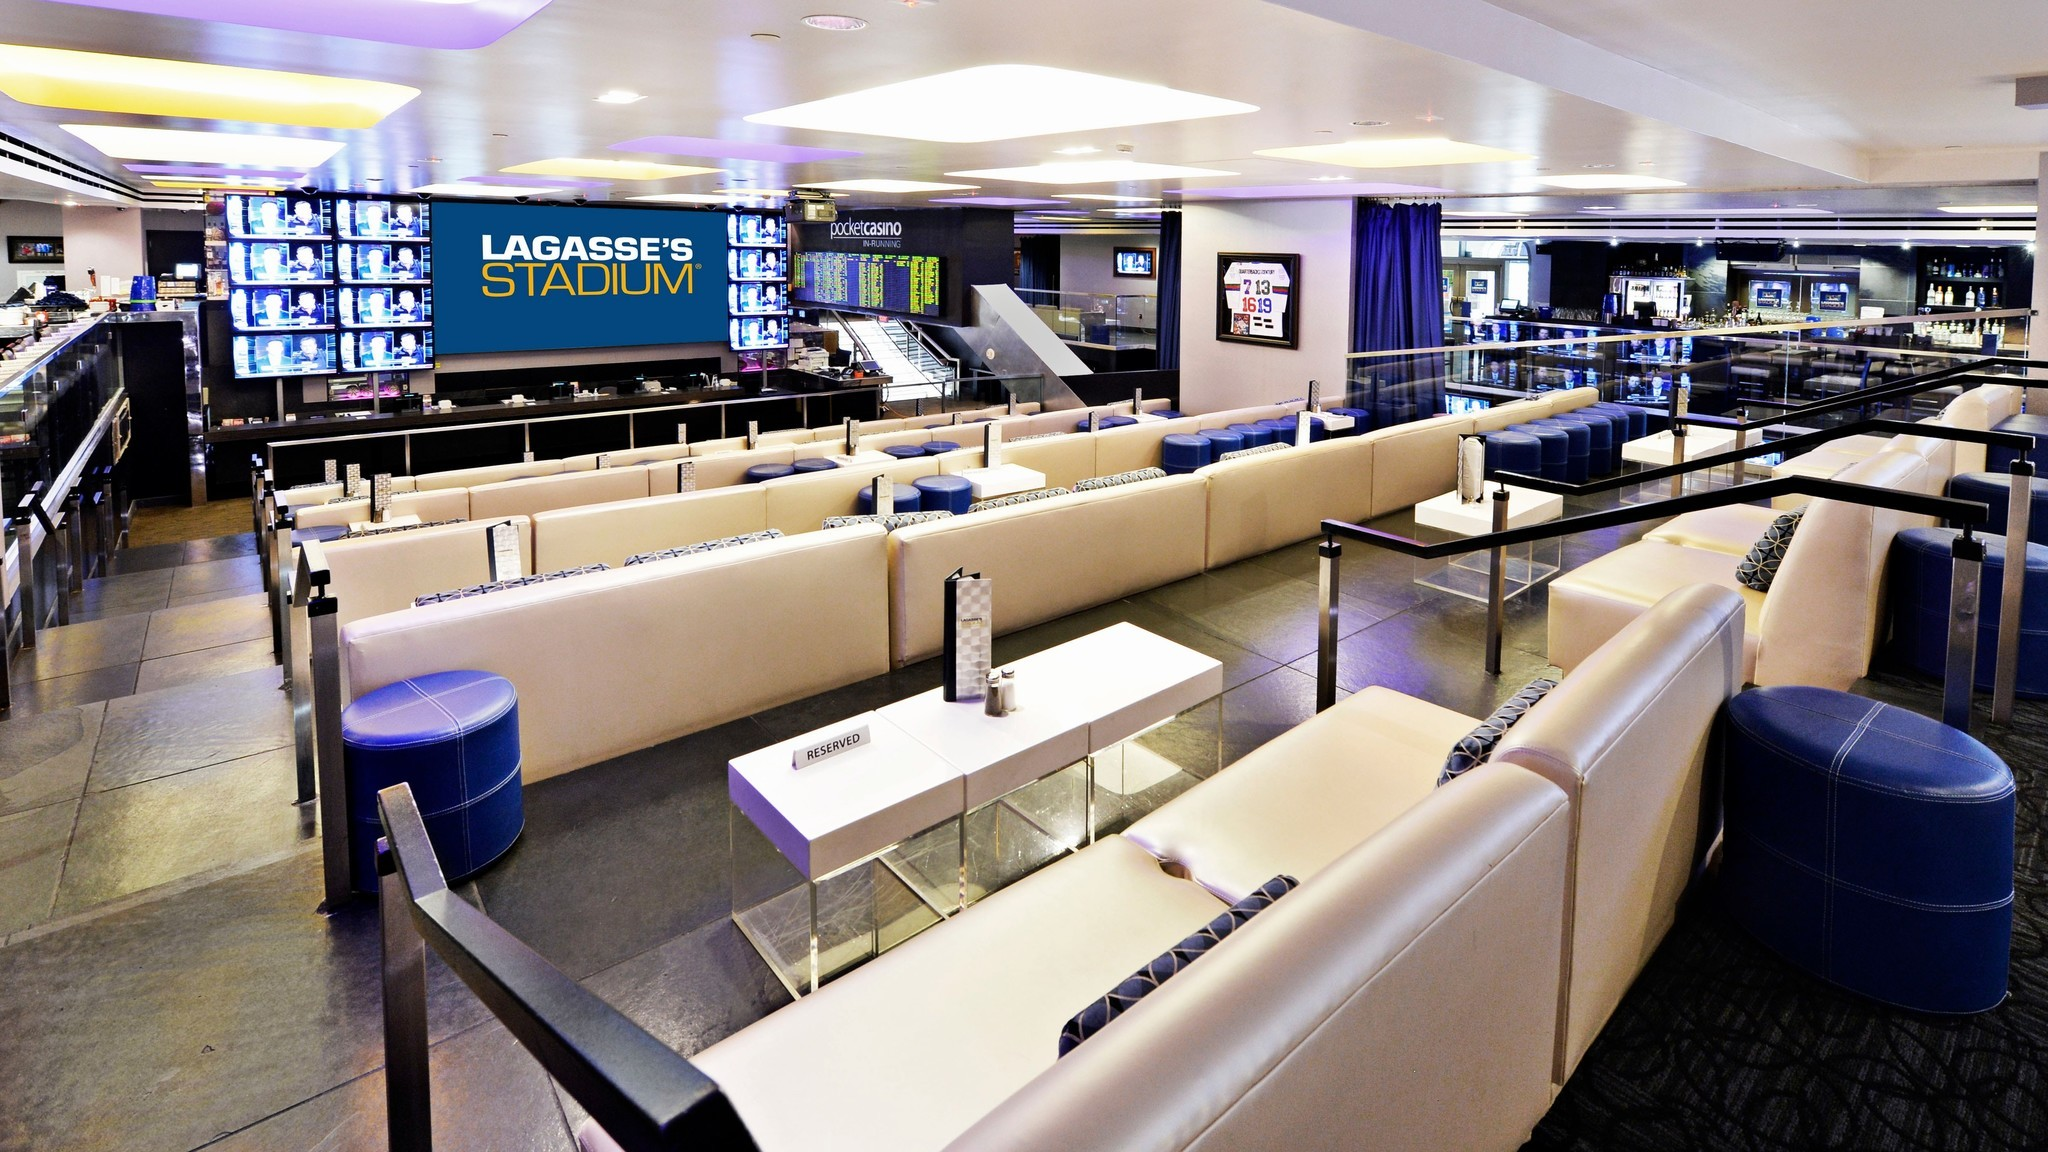 With 100 screens, including one measuring 9 by 16 feet, Legasse's Stadium at the Venetian features food by celebrity chef Emeril Lagasse.